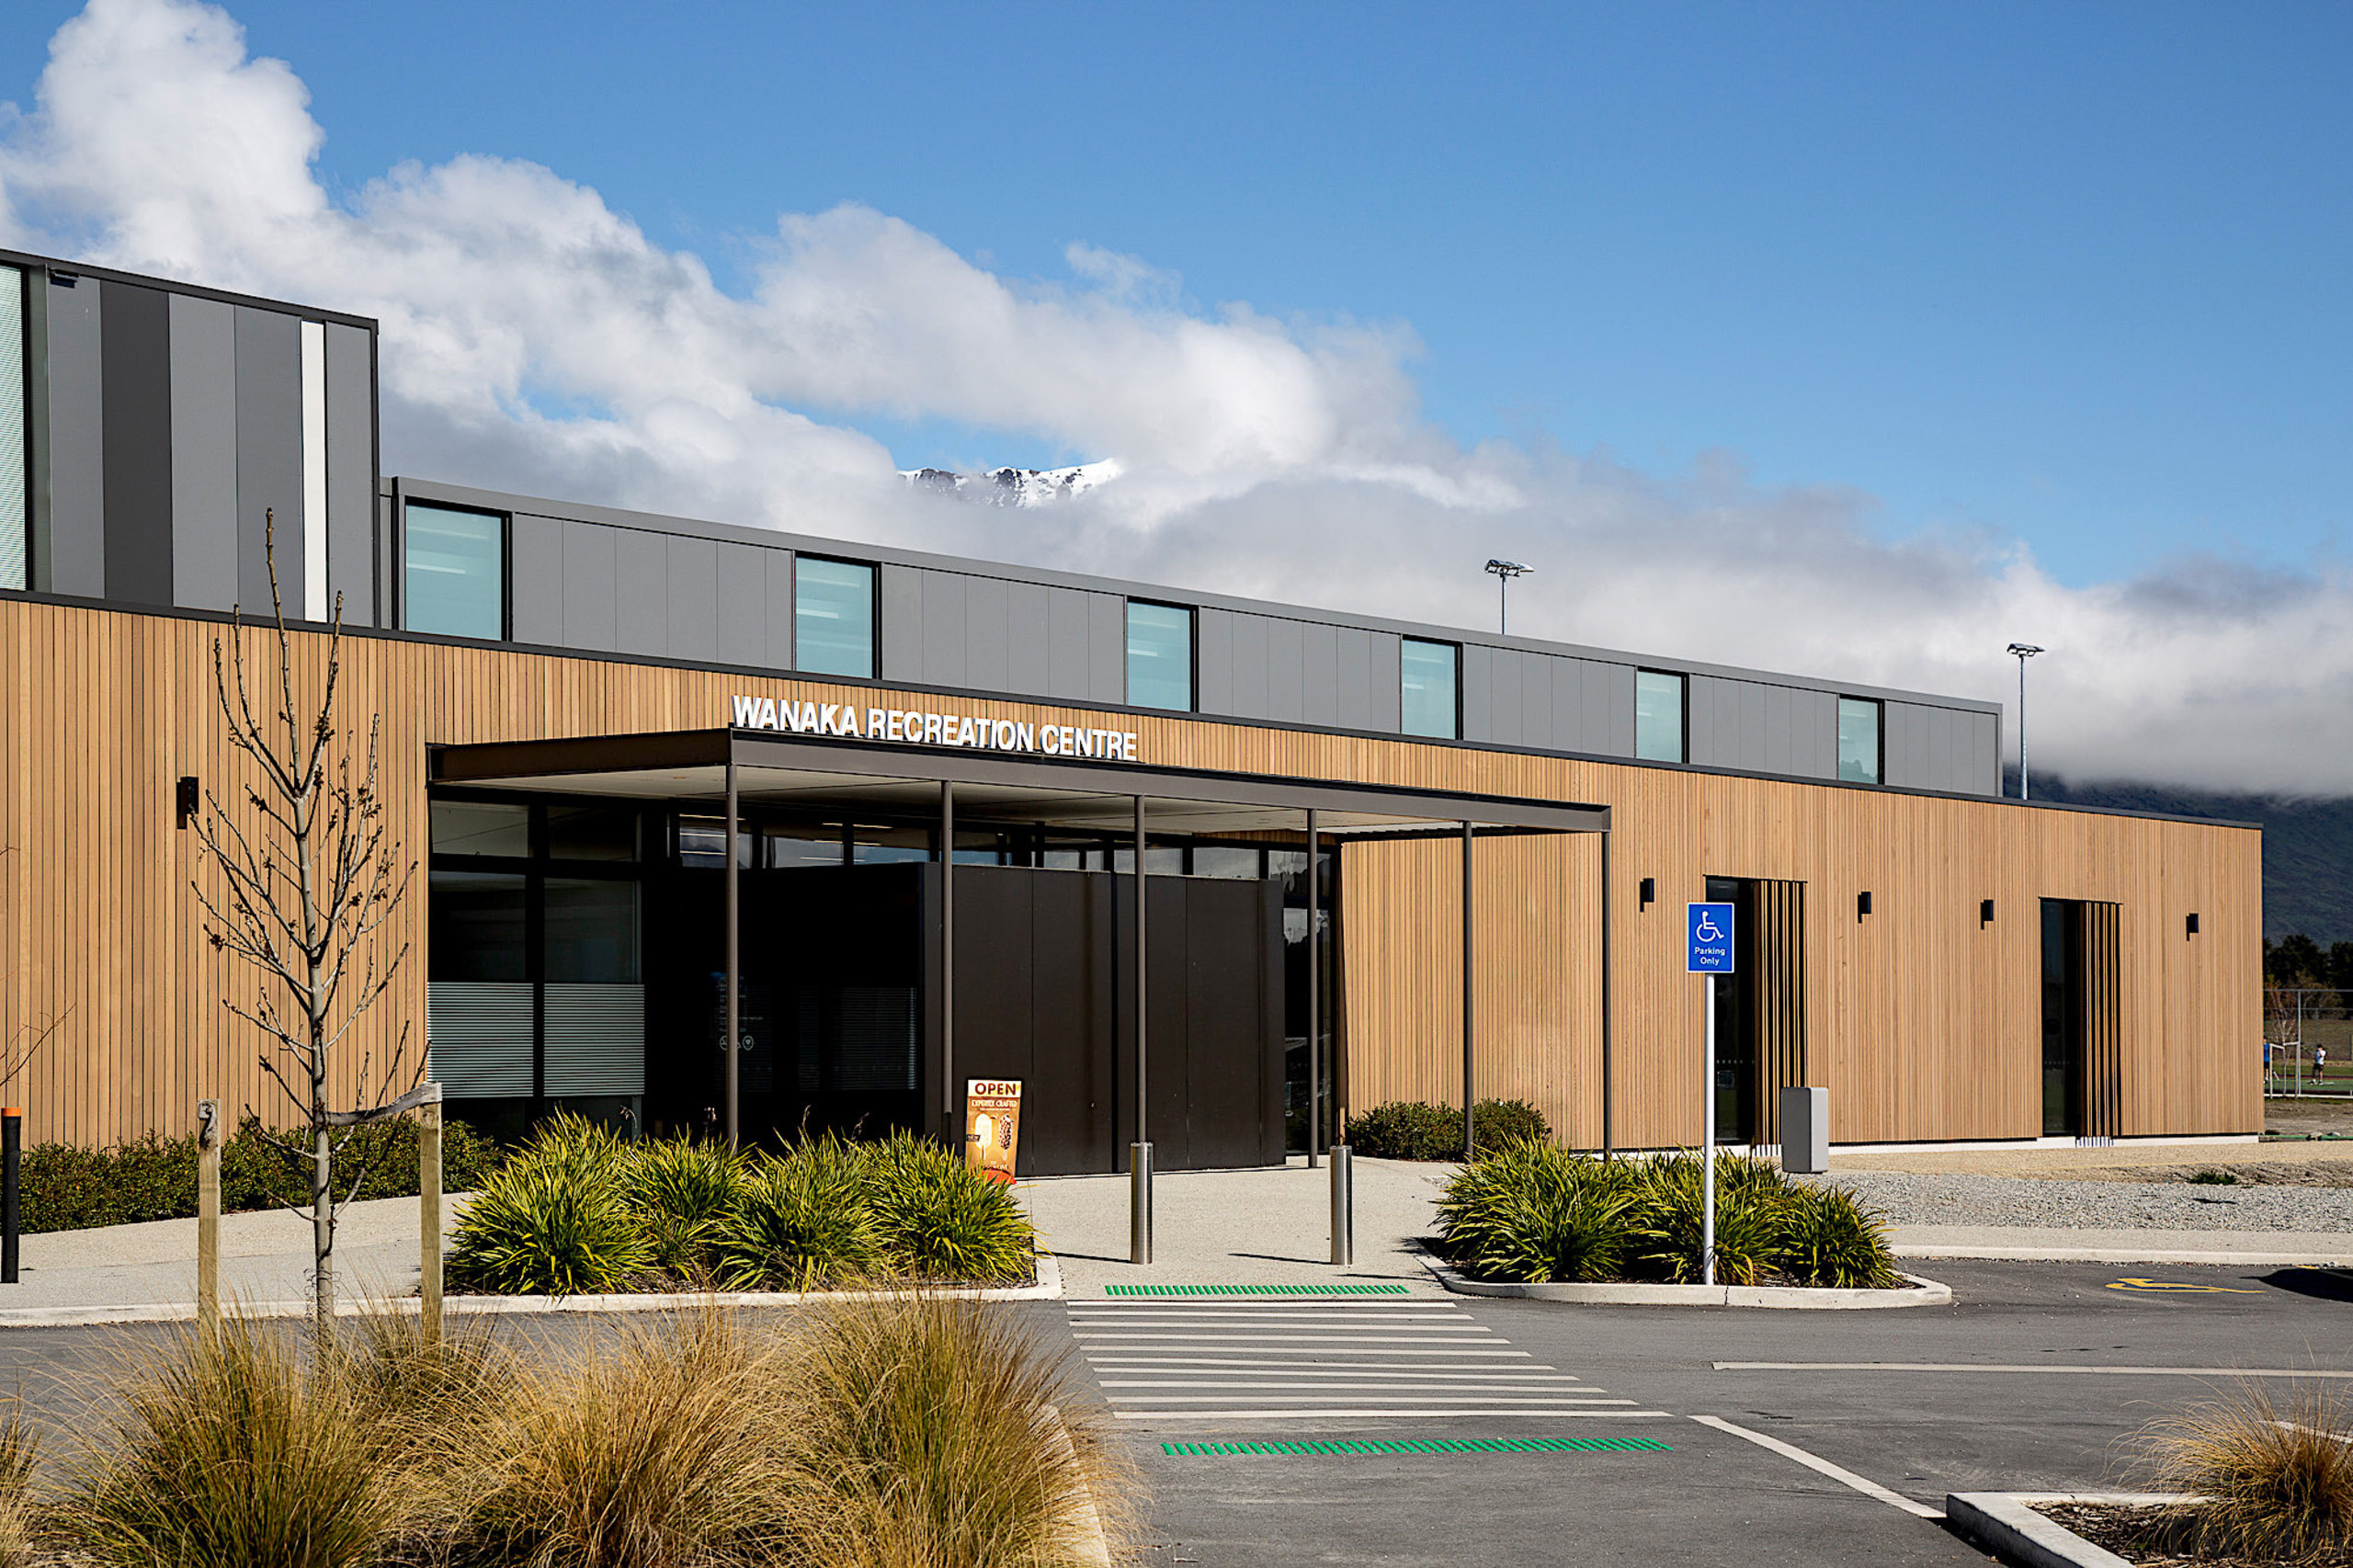 Wanaka Recreation Centre aquatic complex features the extensive gray